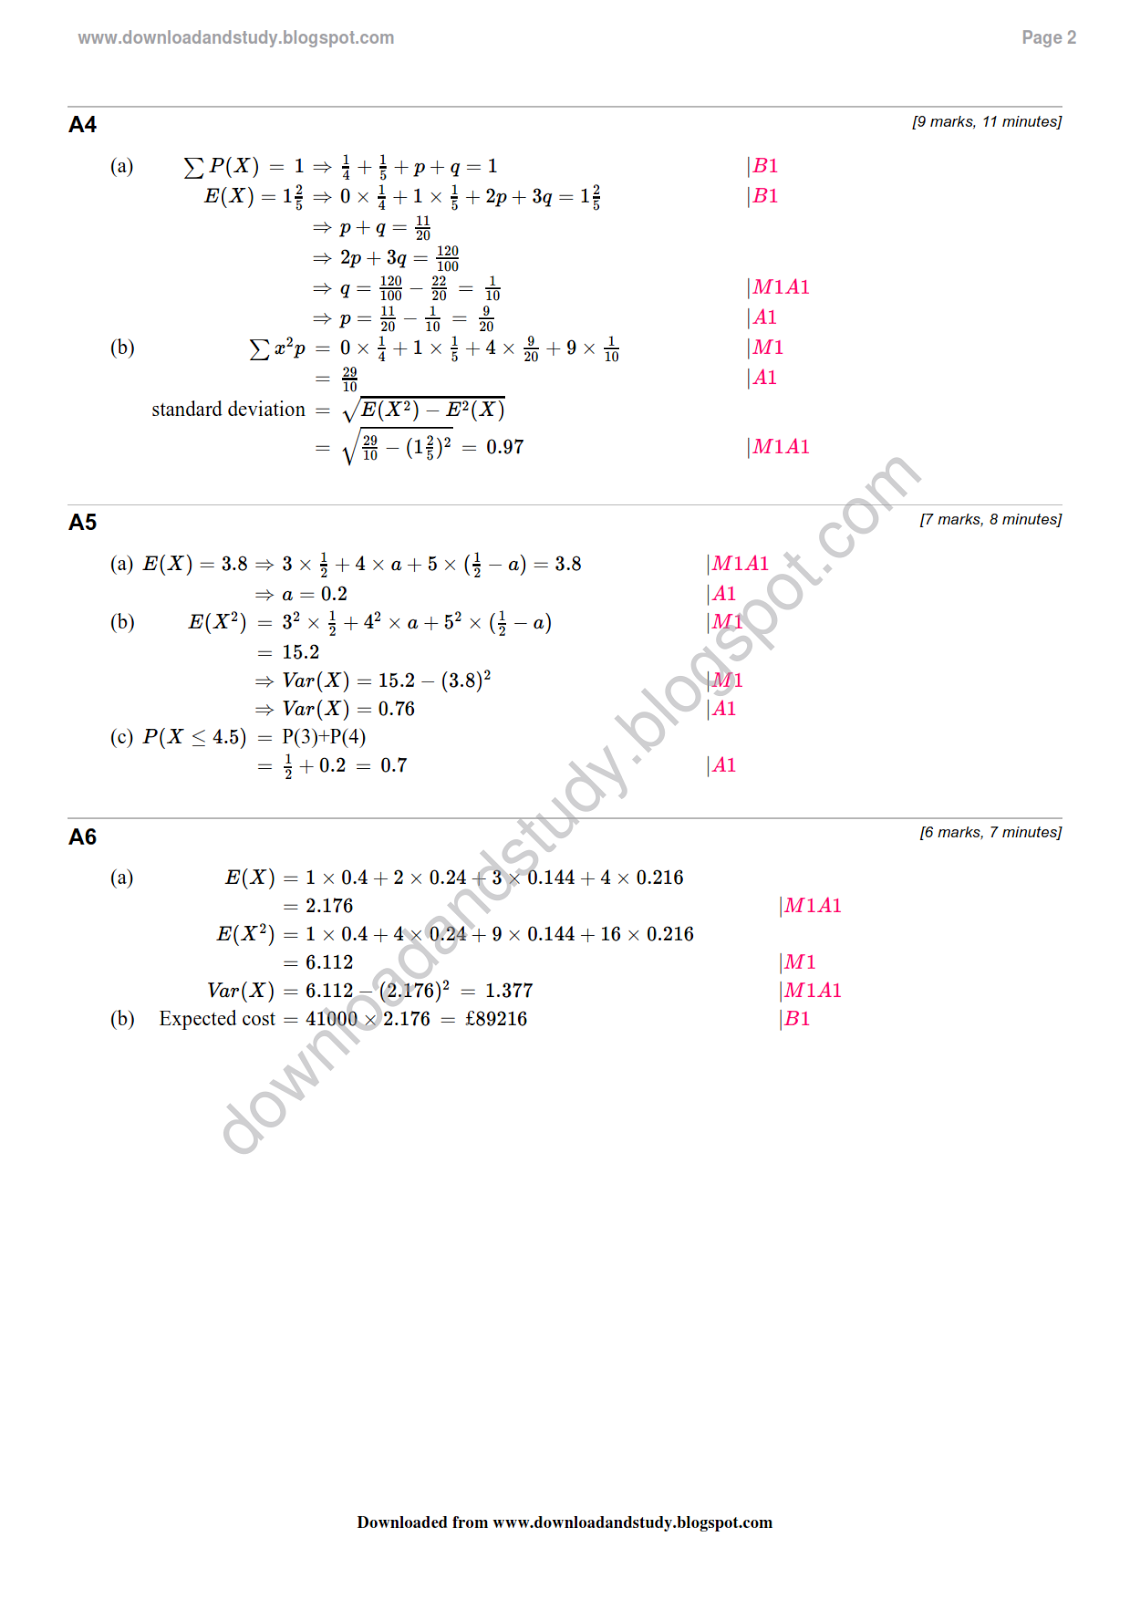 Download Amp Study Solution To As Statistics Probability